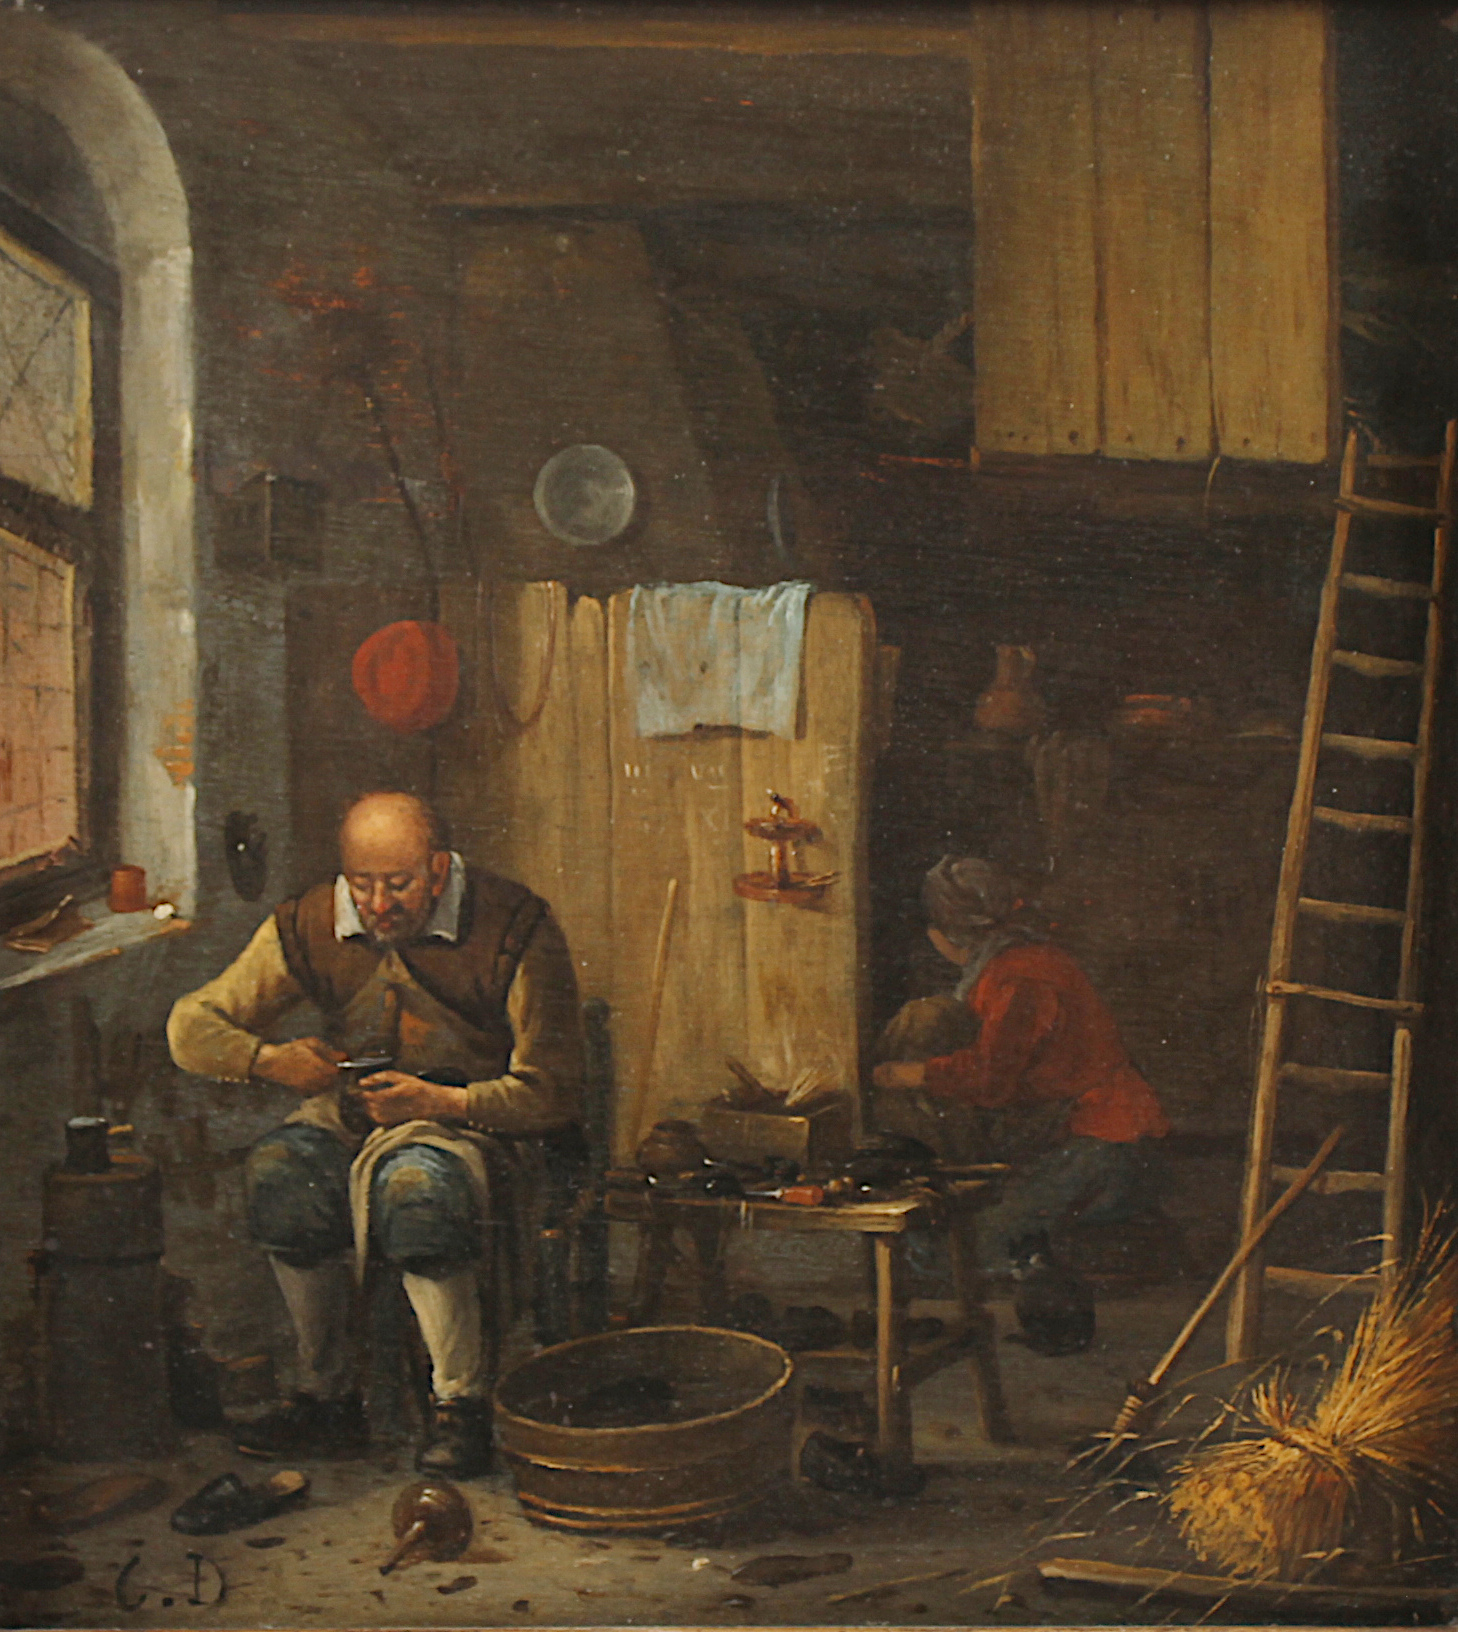 The Shoemaker in his studio